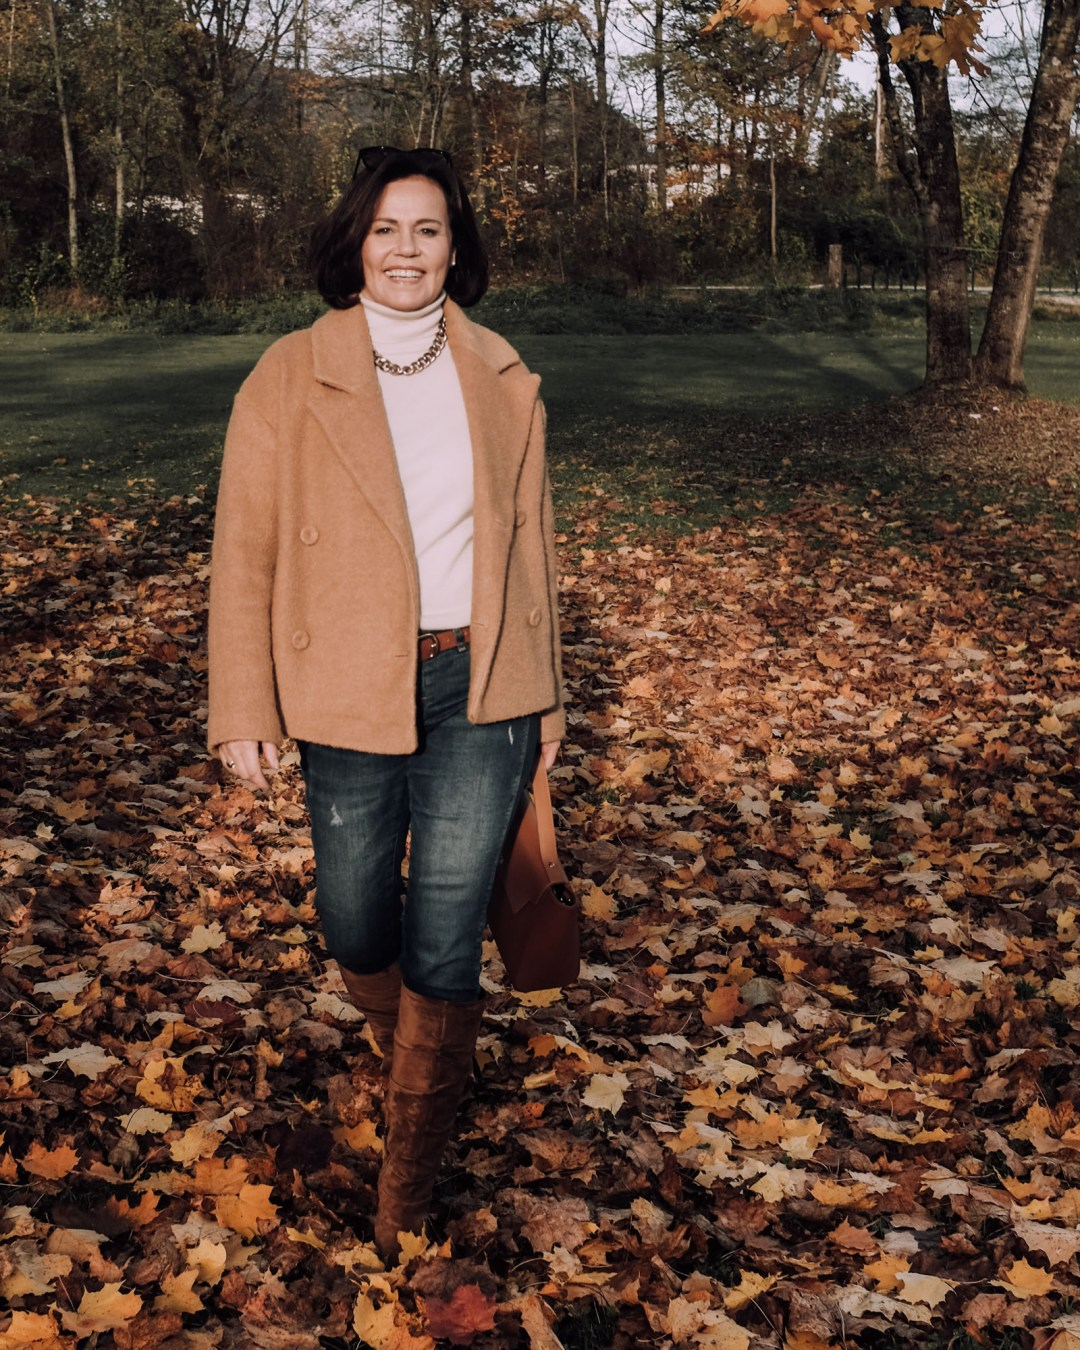 Inastil, Herbstmode, Fallfashion, Styleover50, UE50blogger, Fashionblogger, Modeblogger, Styleblogger, Stiefel, Boots, Camel, Stilberatung, Modeberatung,_-5